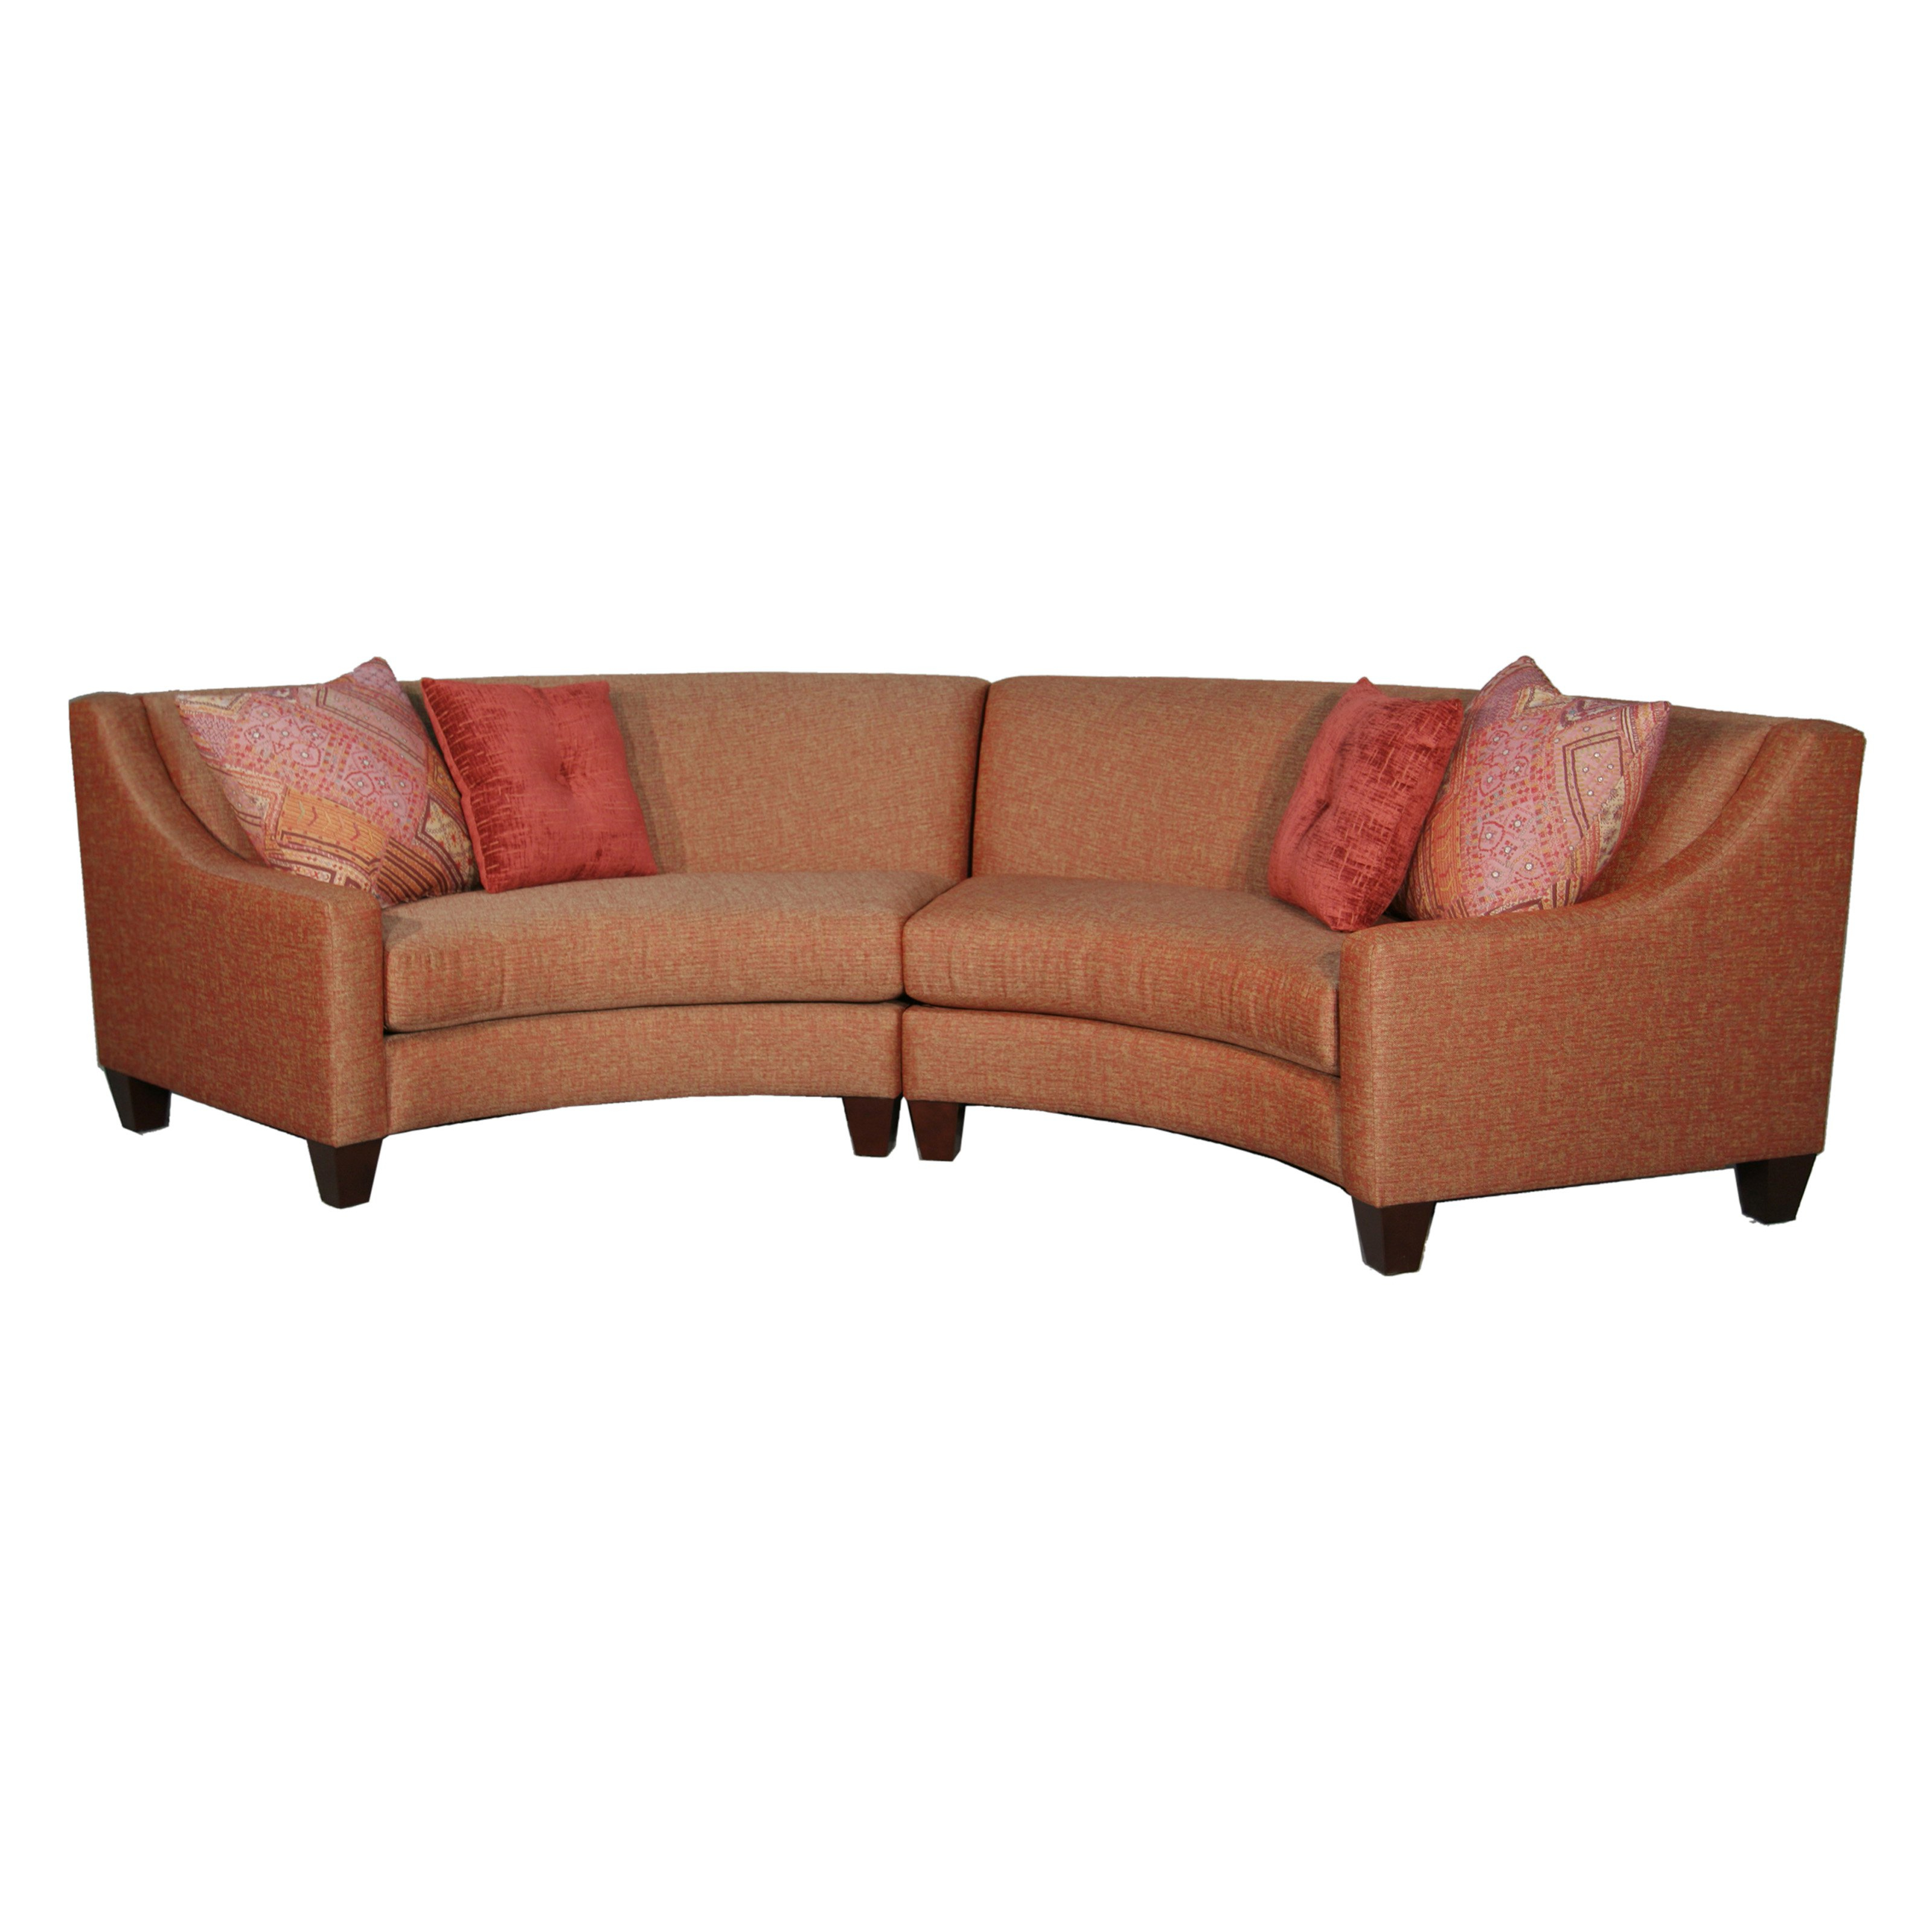 Most Up To Date Fairmont Designs Aurora 2 Piece Sectional Sofa – Walmart For Aurora 2 Piece Sectionals (View 14 of 20)